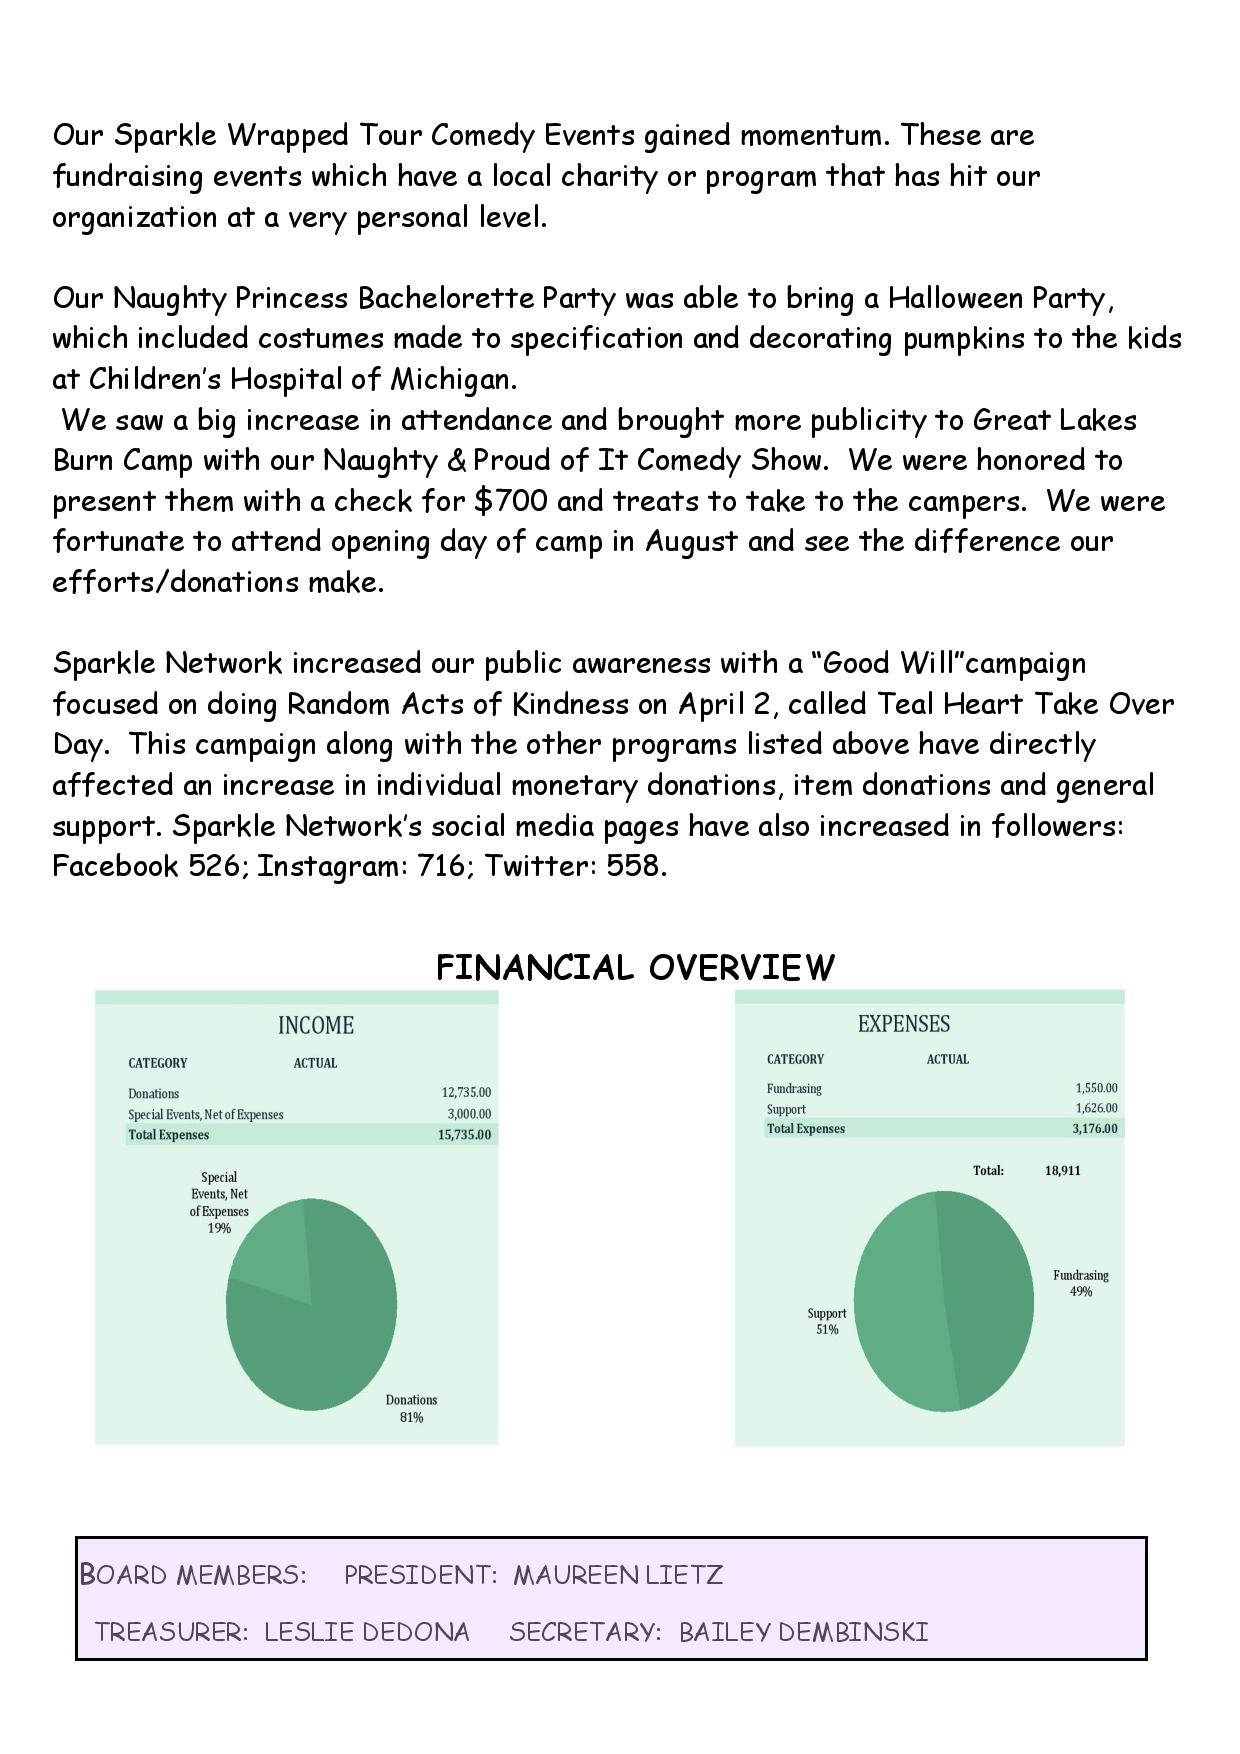 2015-sparkle-network-annual-report-page-002